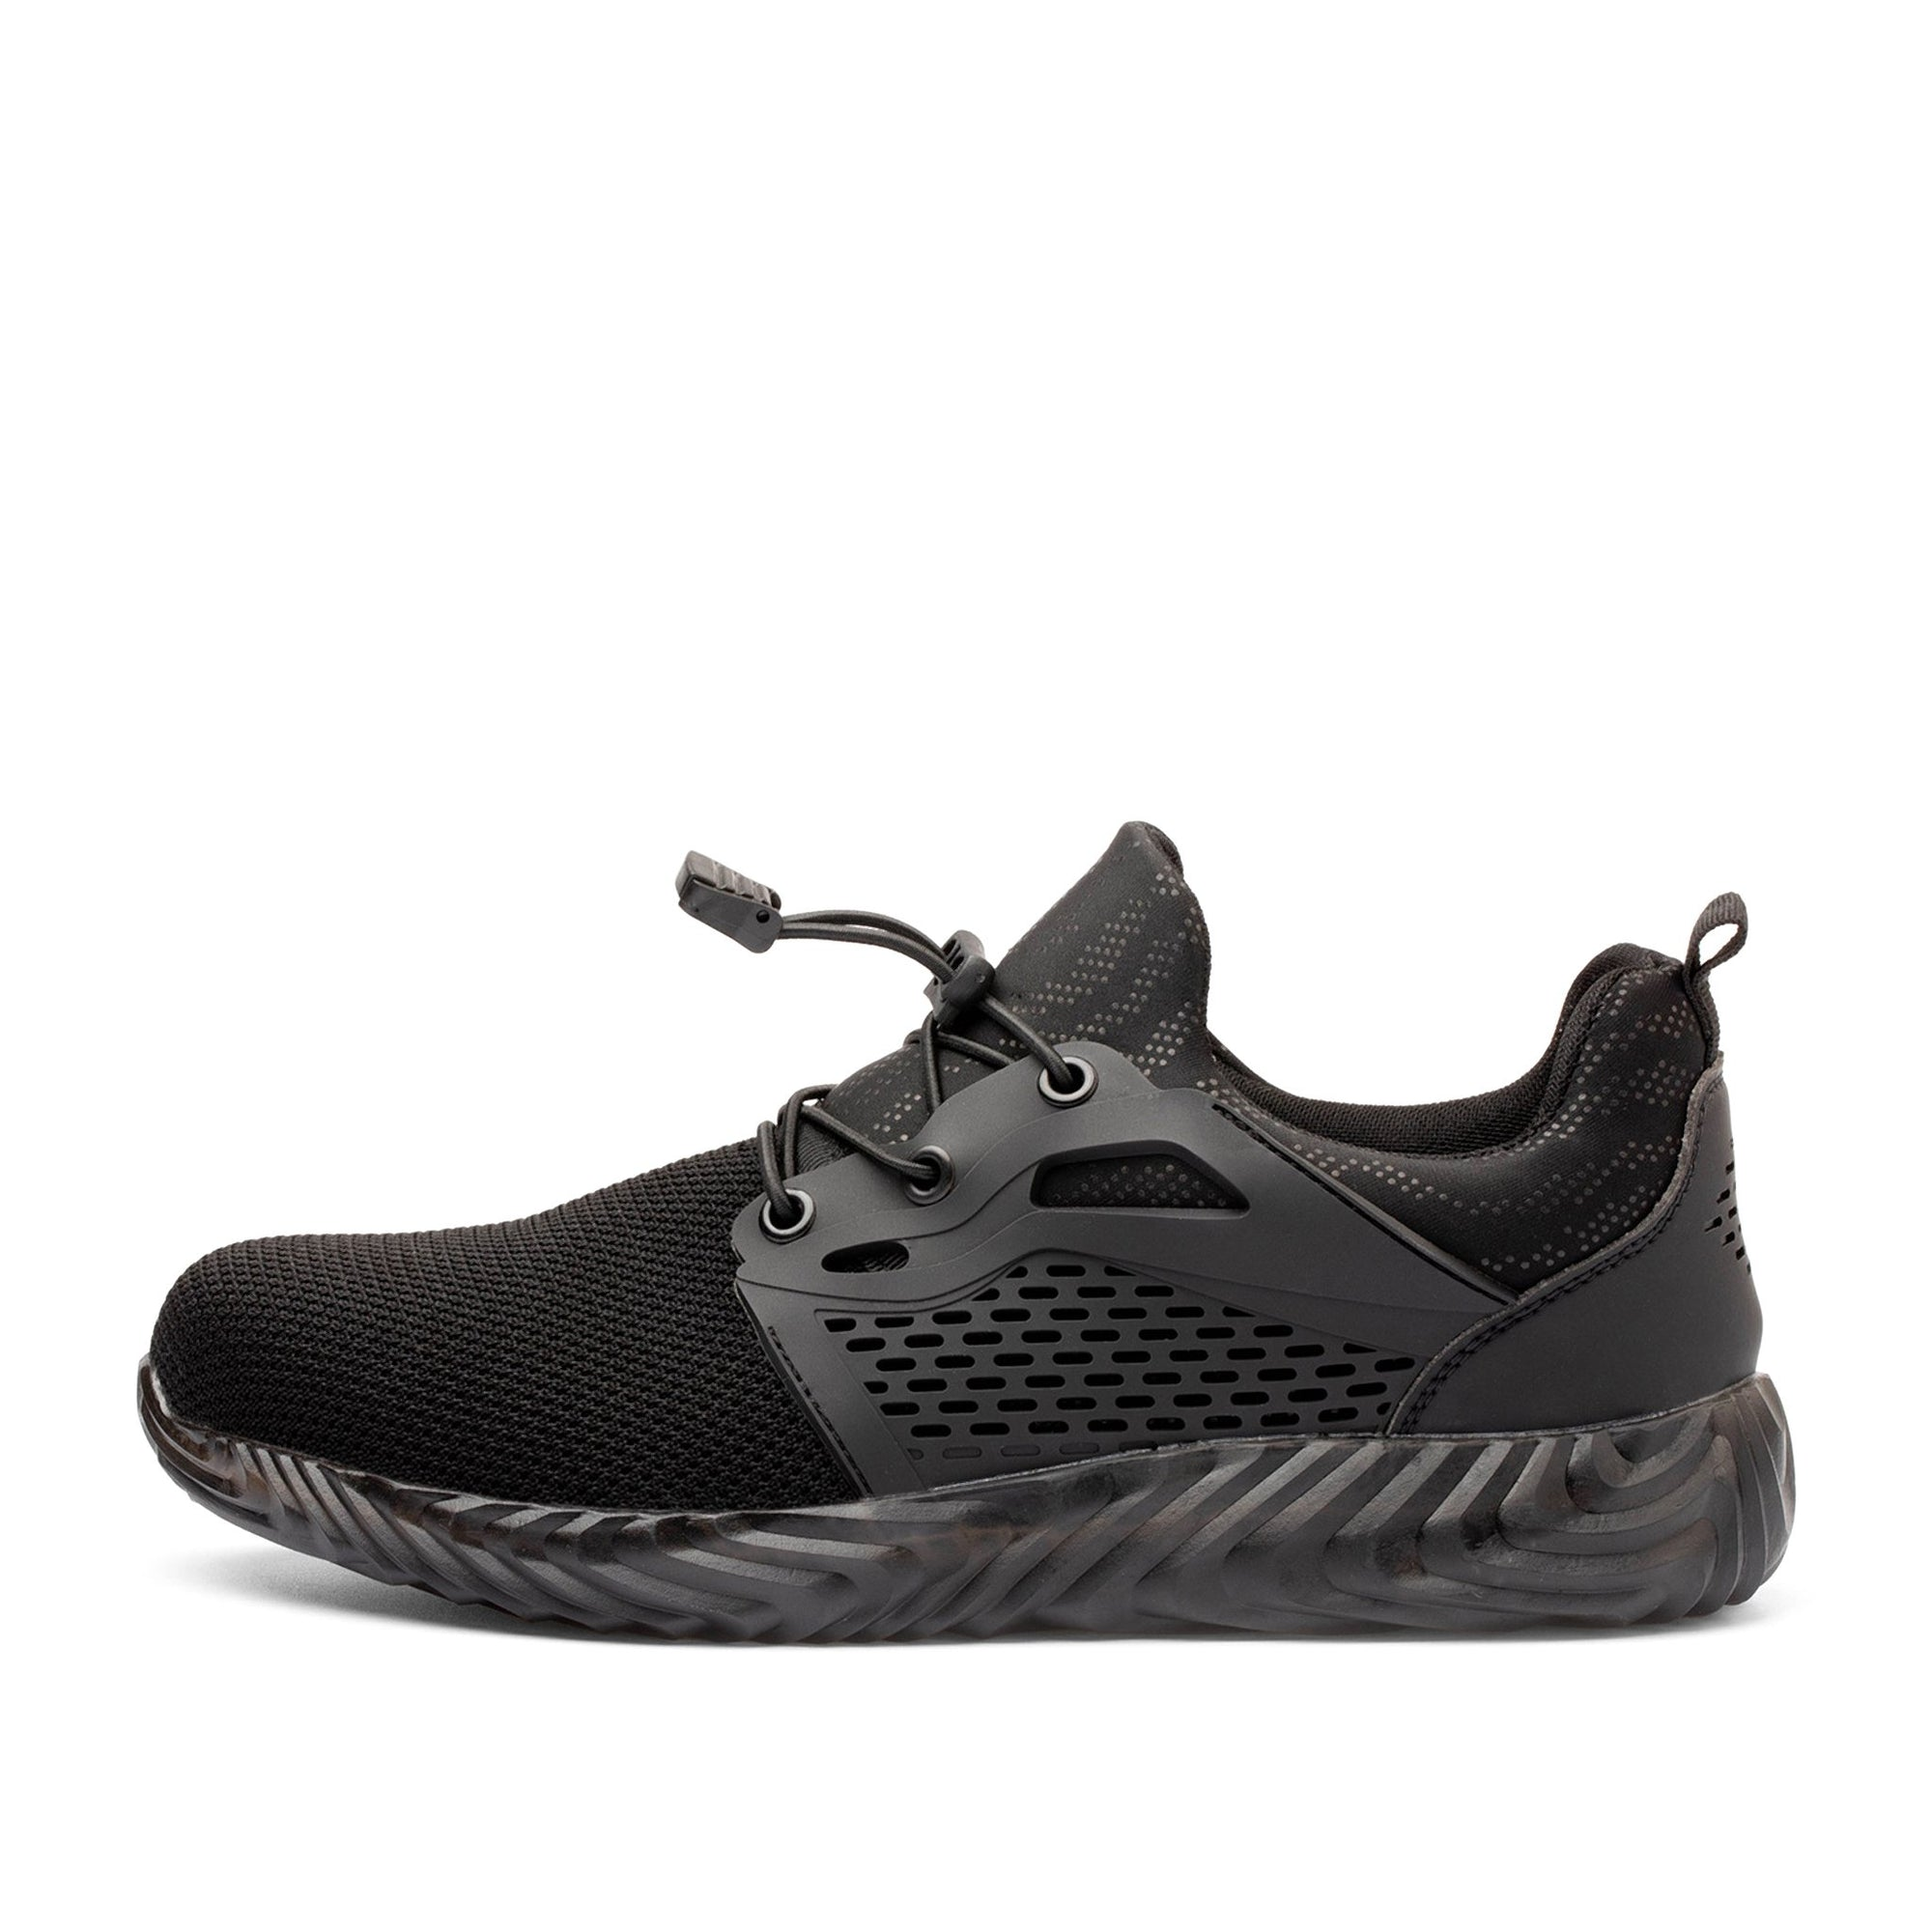 Ryder 1.5 Black - Indestructible Shoes